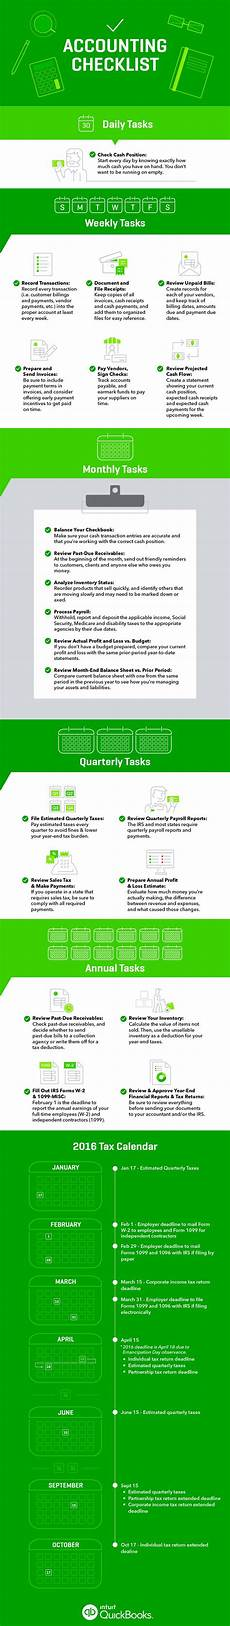 Daily Bookkeeping Checklist Infographic Small Business Accounting Checklist